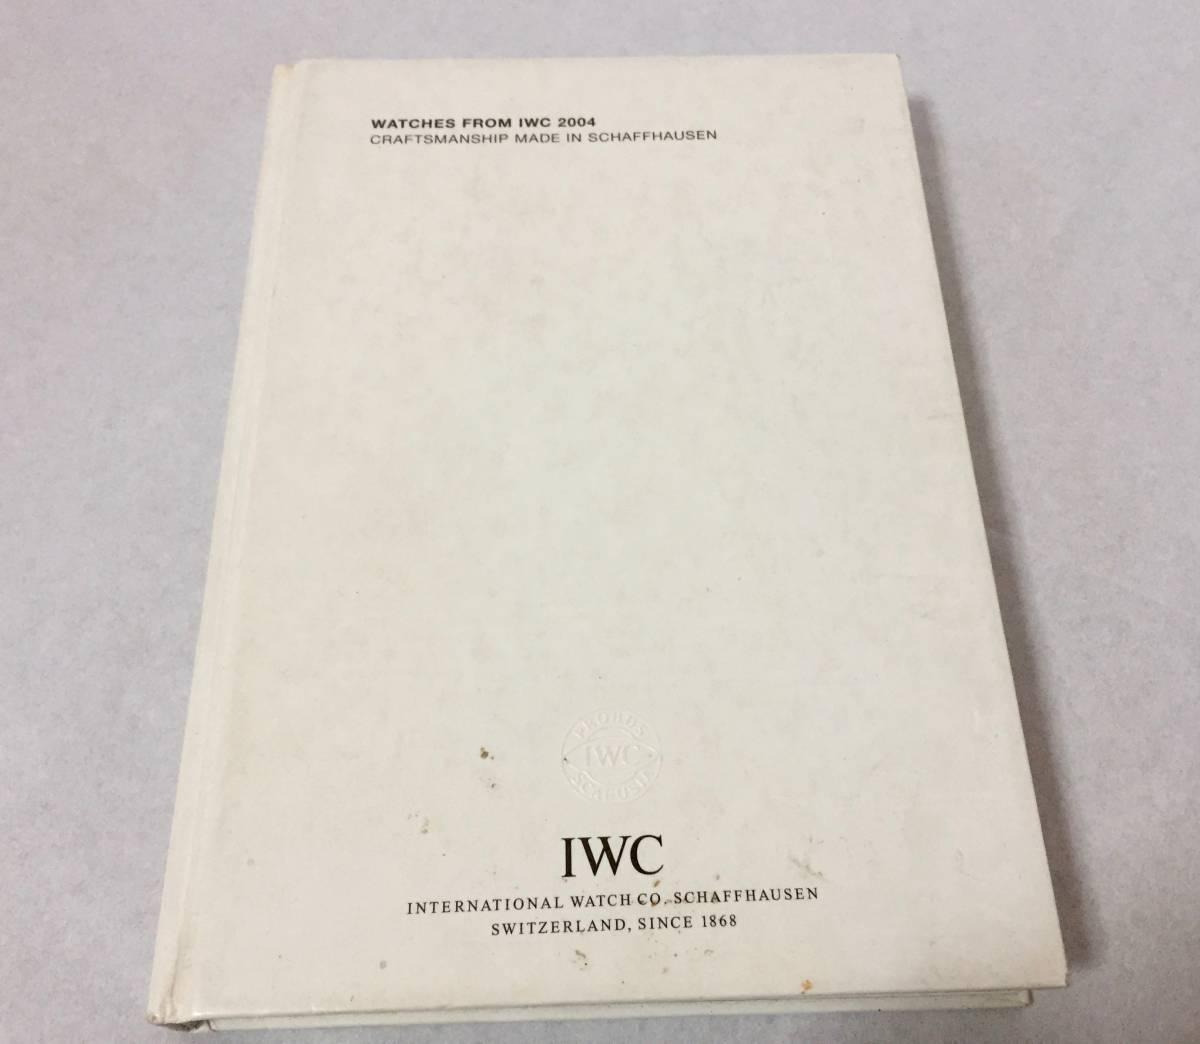 WATCHES FROM IWC 2004 非売品 カタログ 資料 時計 腕時計